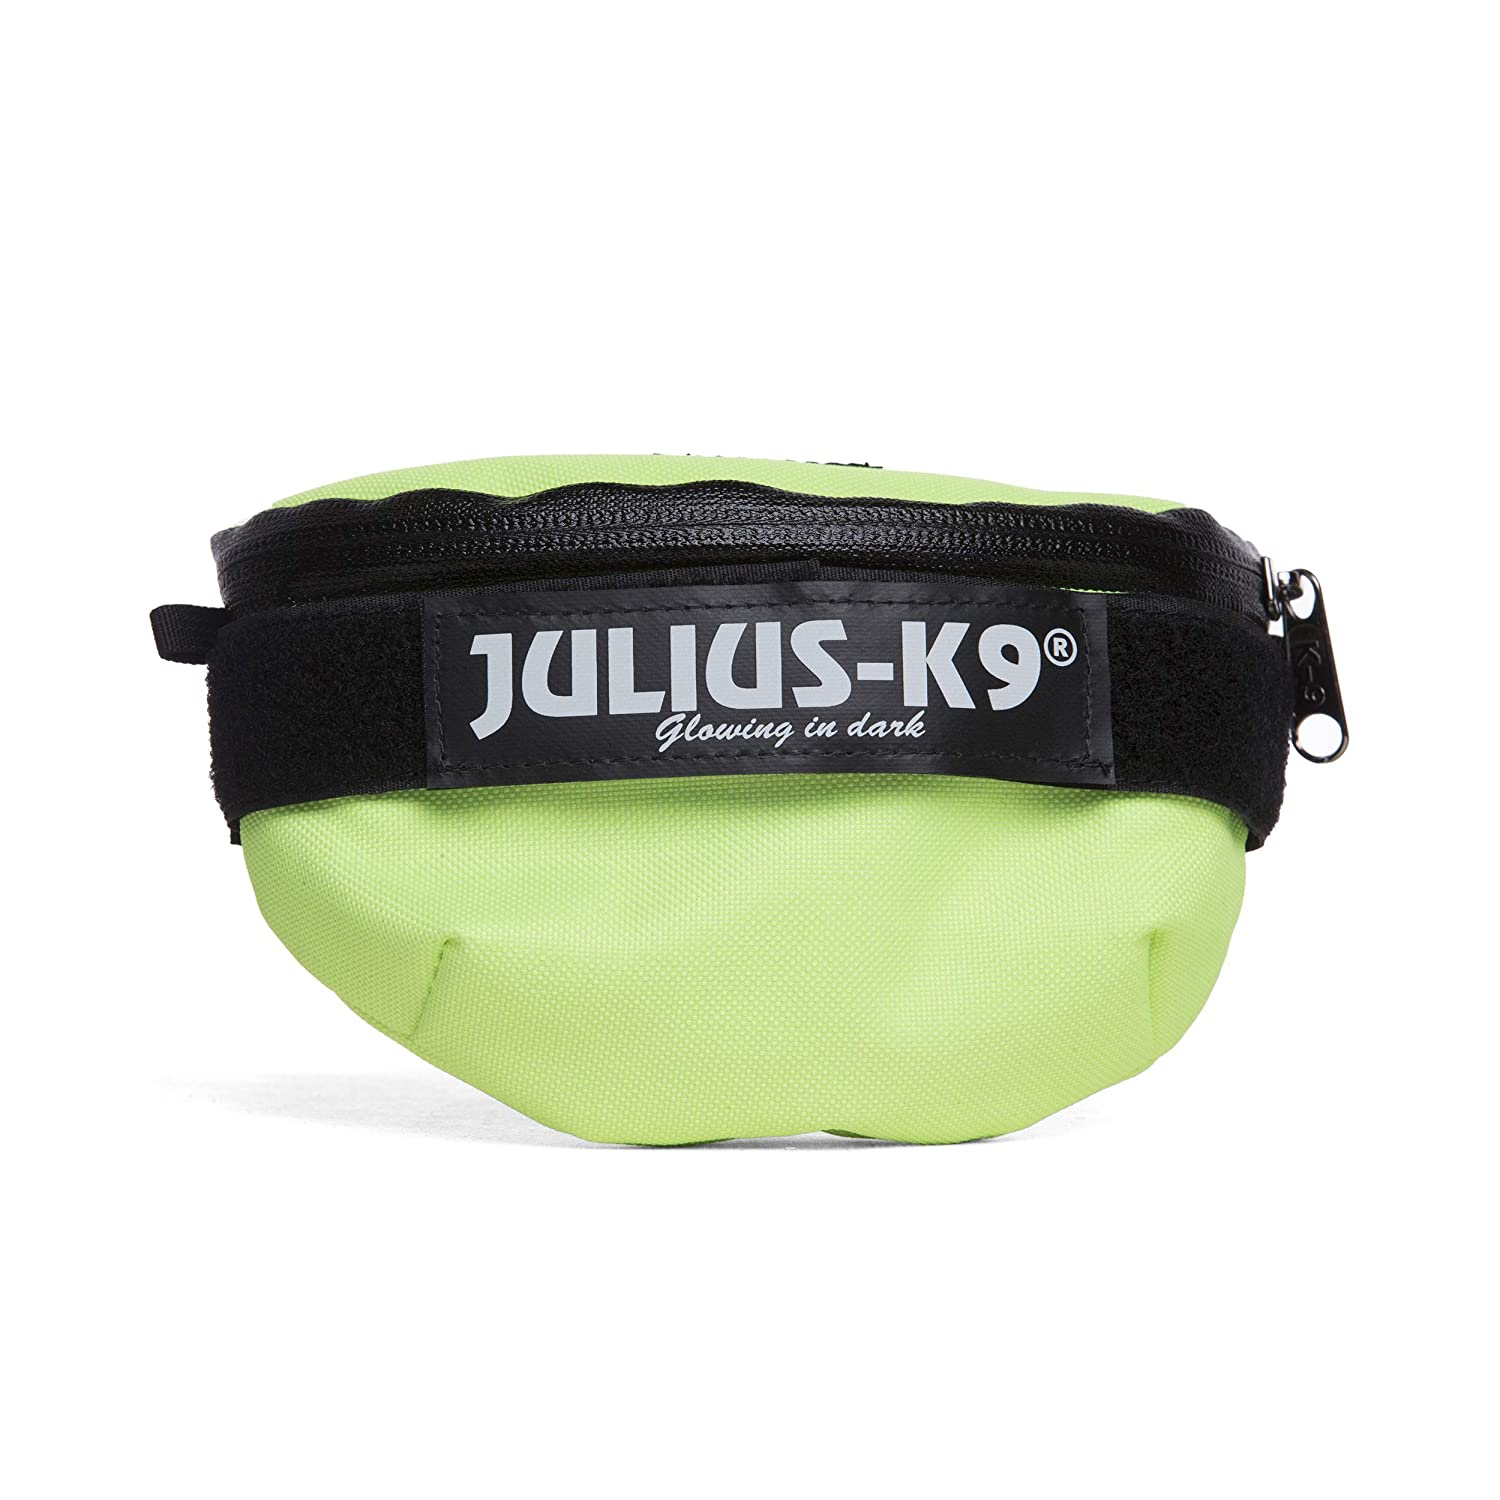 Red Mini to 4 Julius-K9 IDC Universal Side Bags for Dogs Harness Size